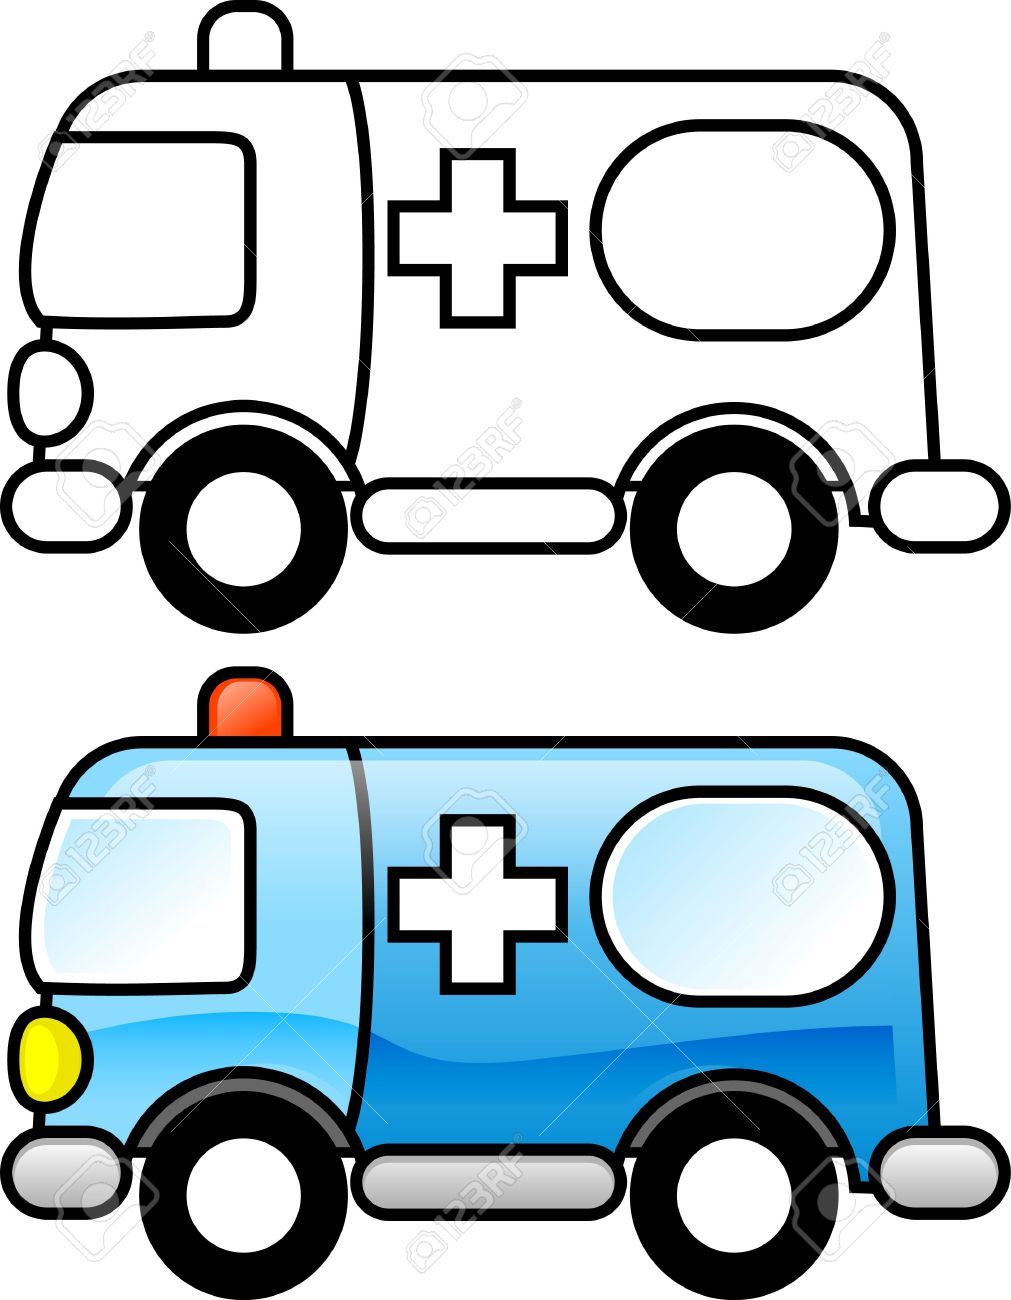 ambulance printable coloring page for children or you can use it as clip art - Ambulance Coloring Pages Printable